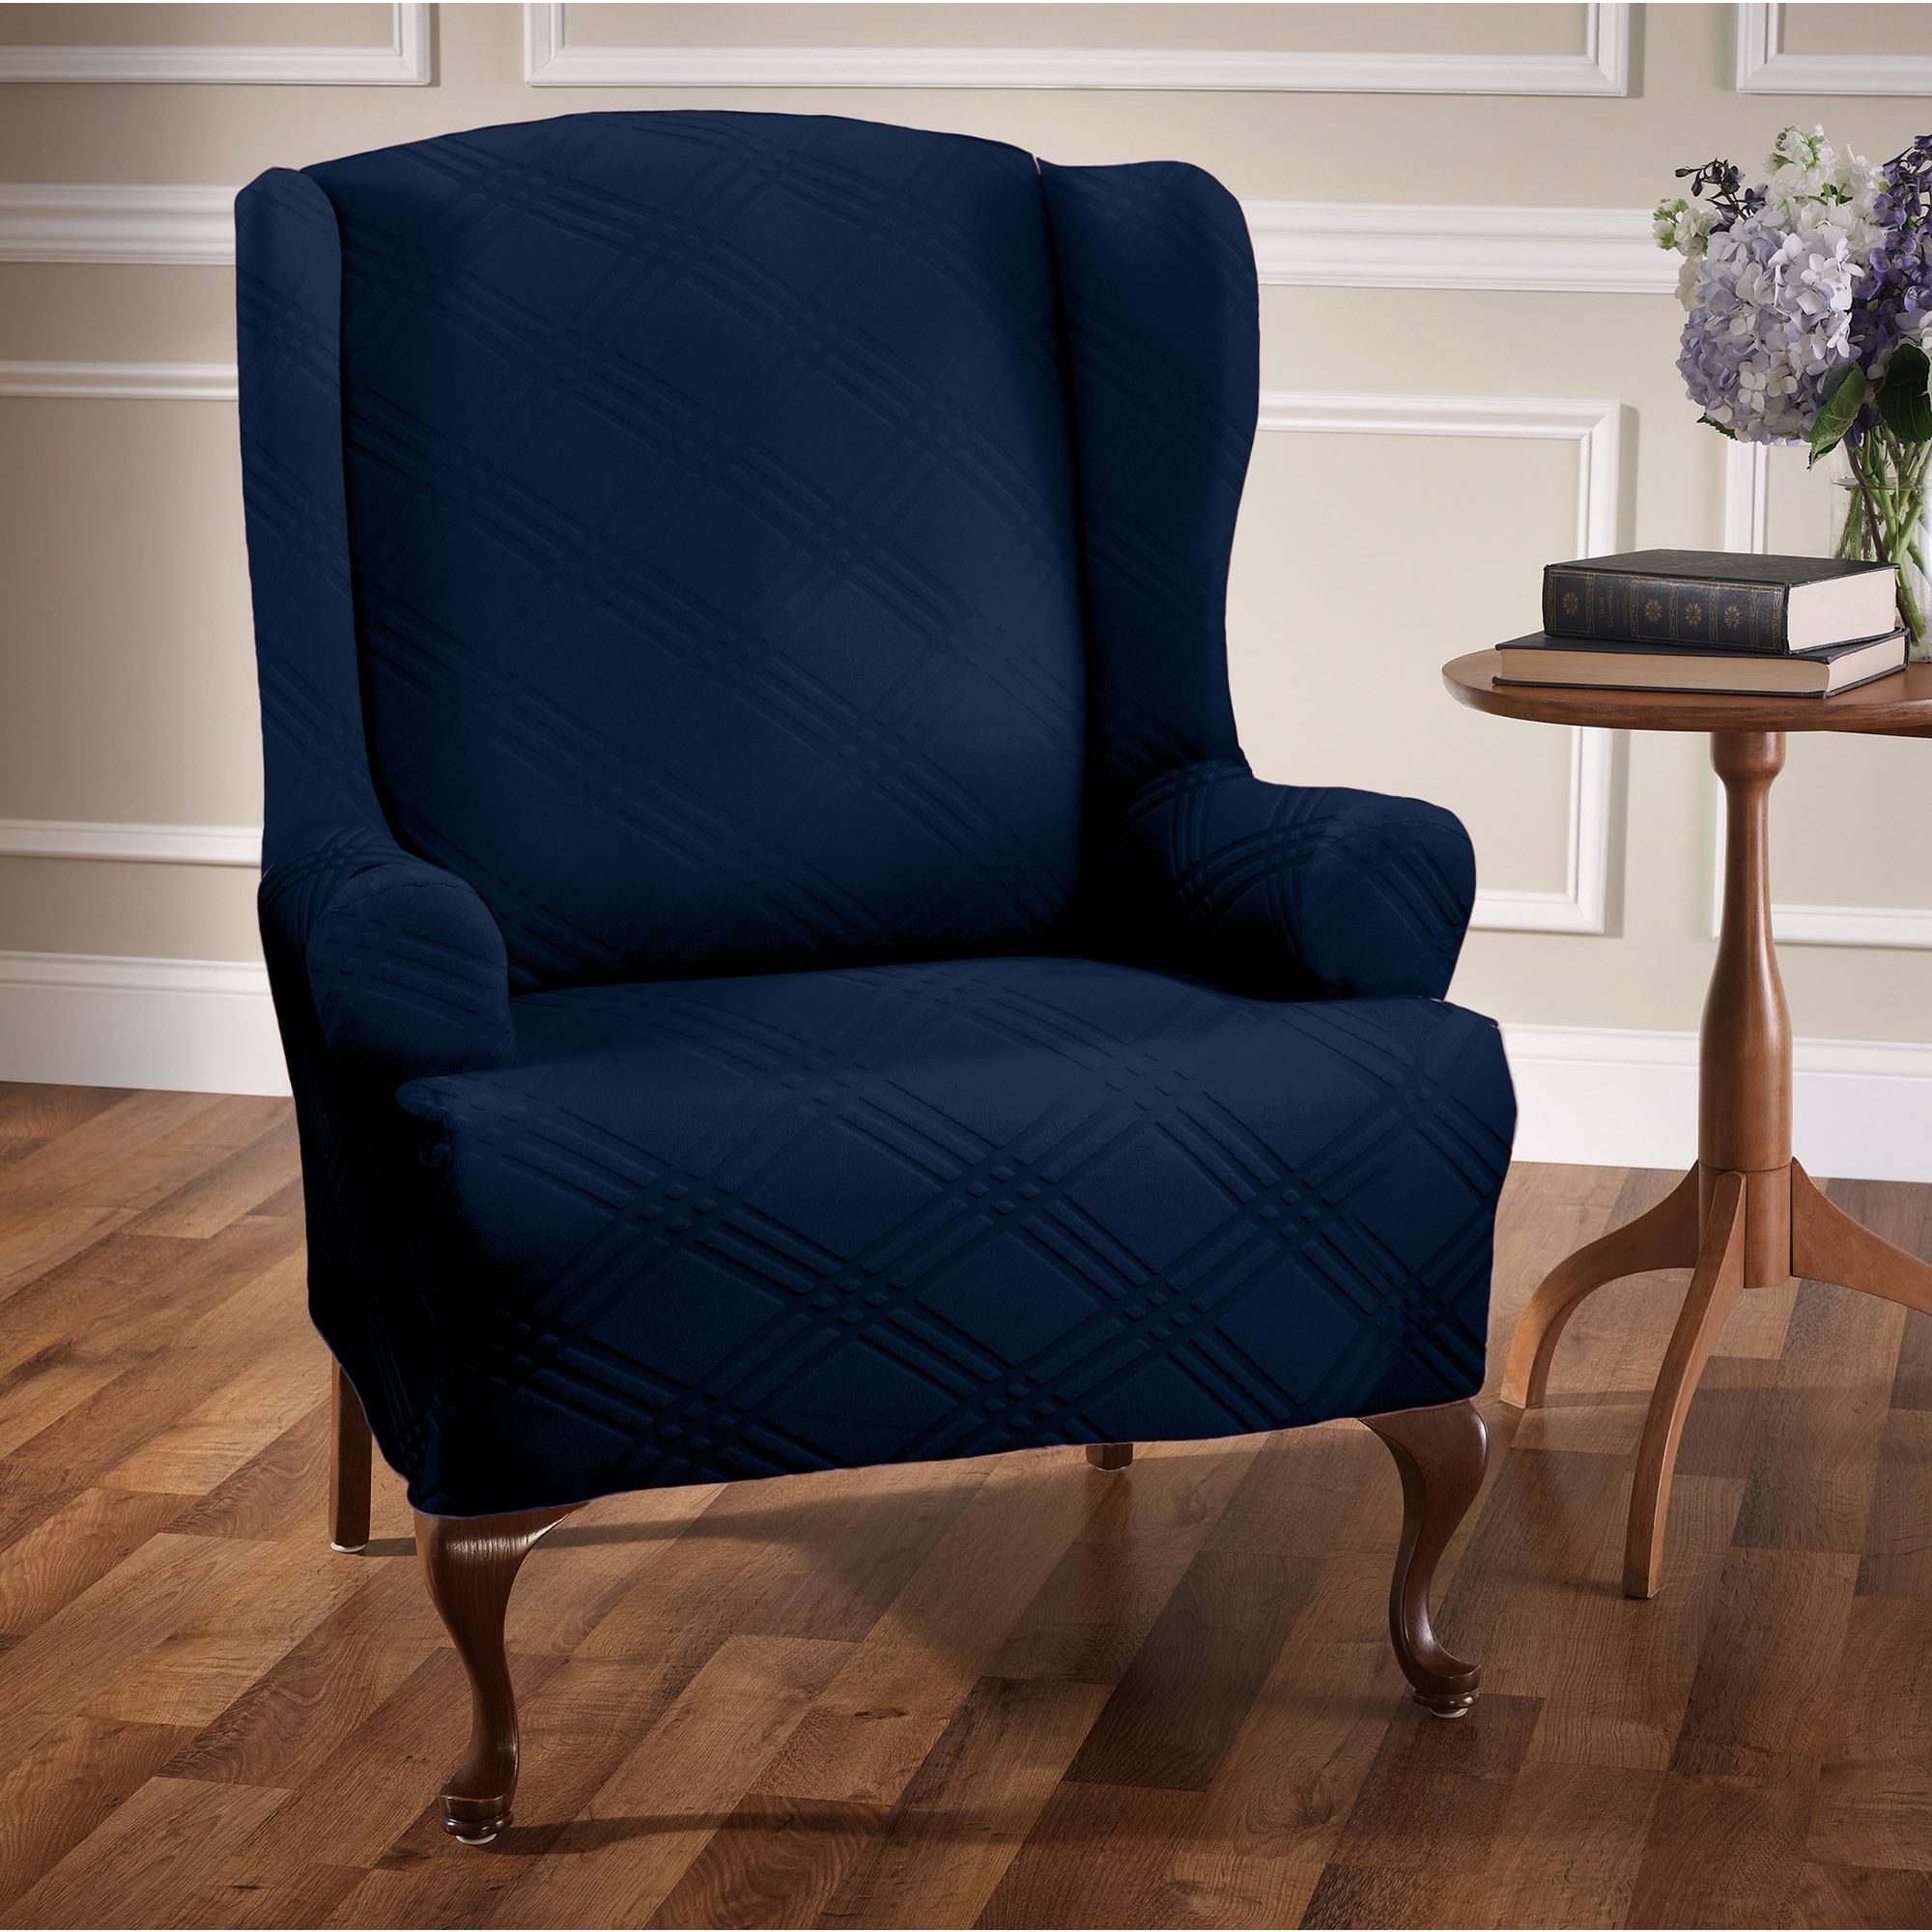 Charmant Double Diamond Stretch Slipcover Wing Chair